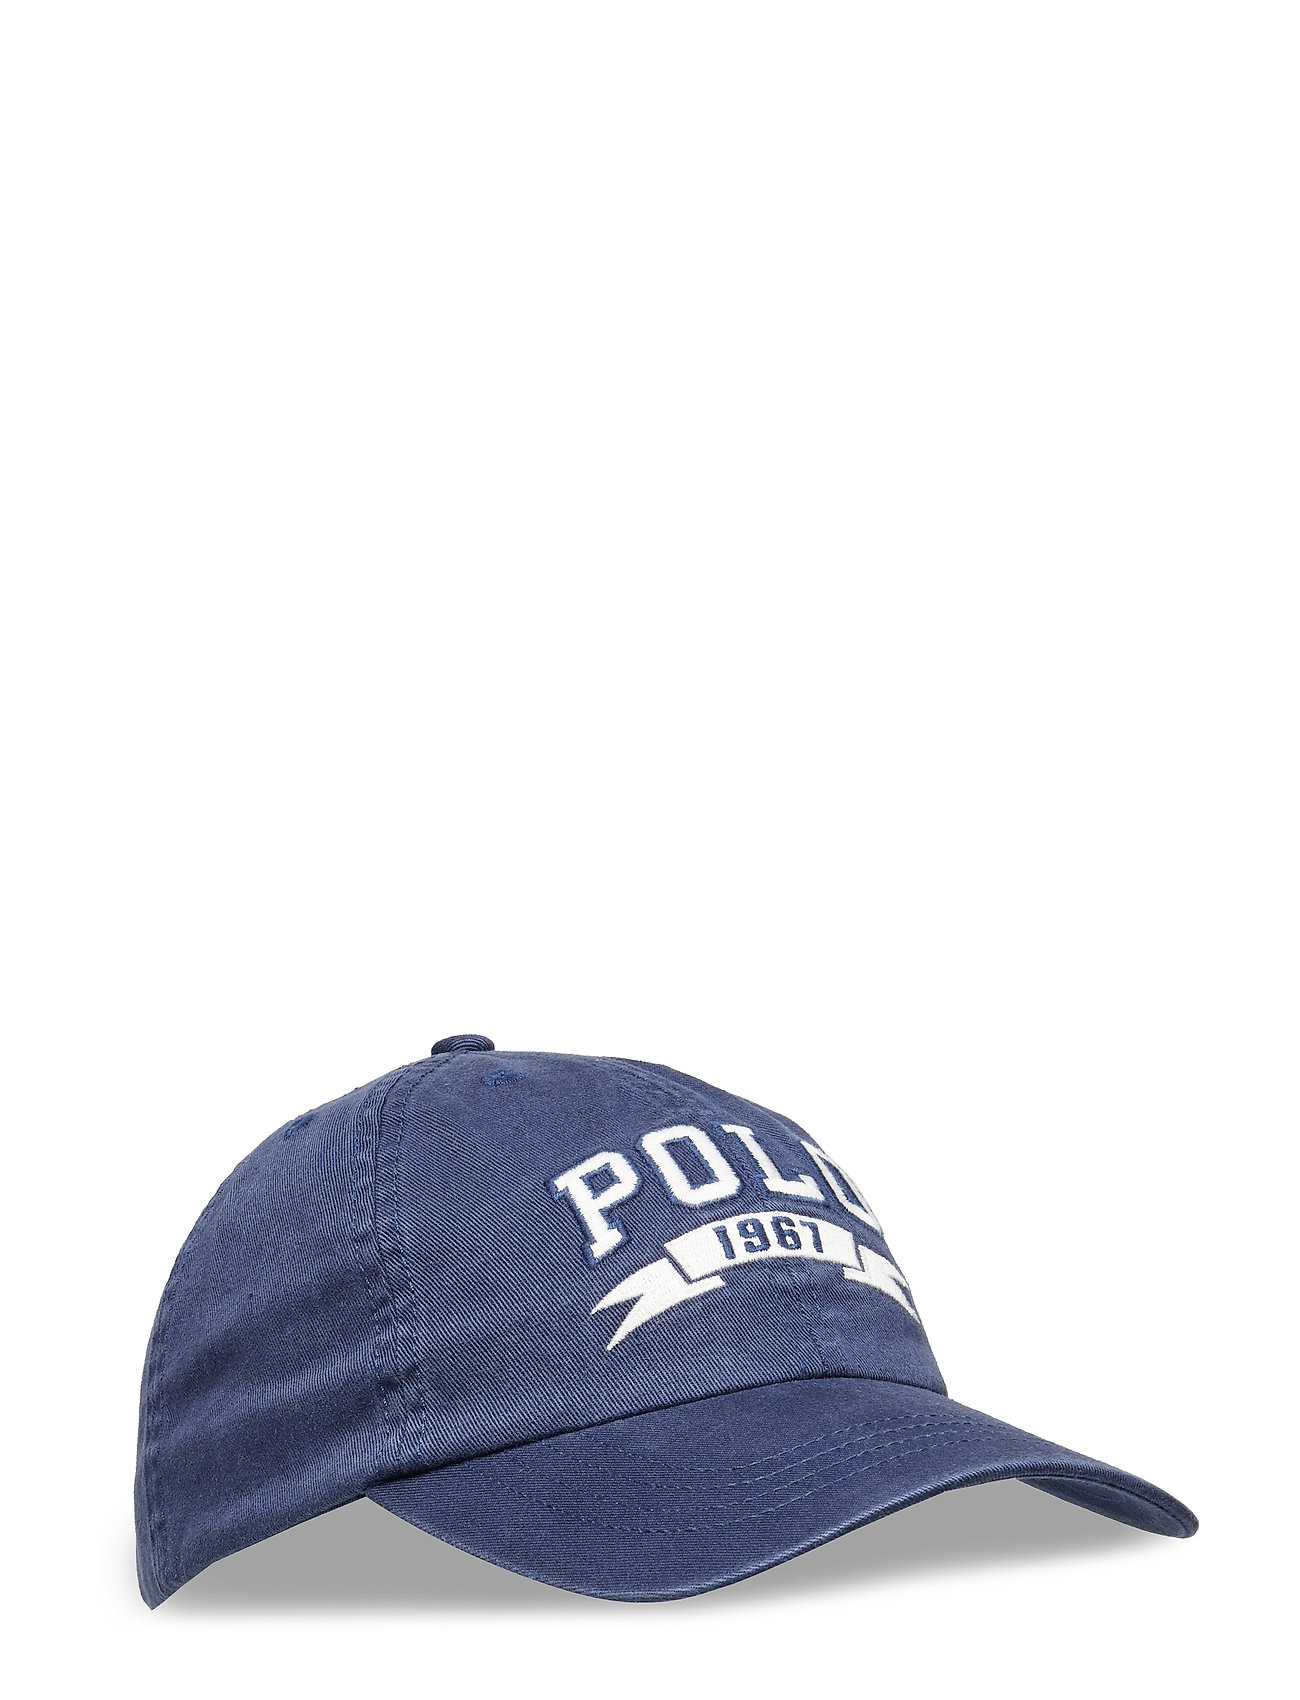 Ralph Lauren Kids Cotton Chino Baseball Cap - BOATHOUSE NAVY